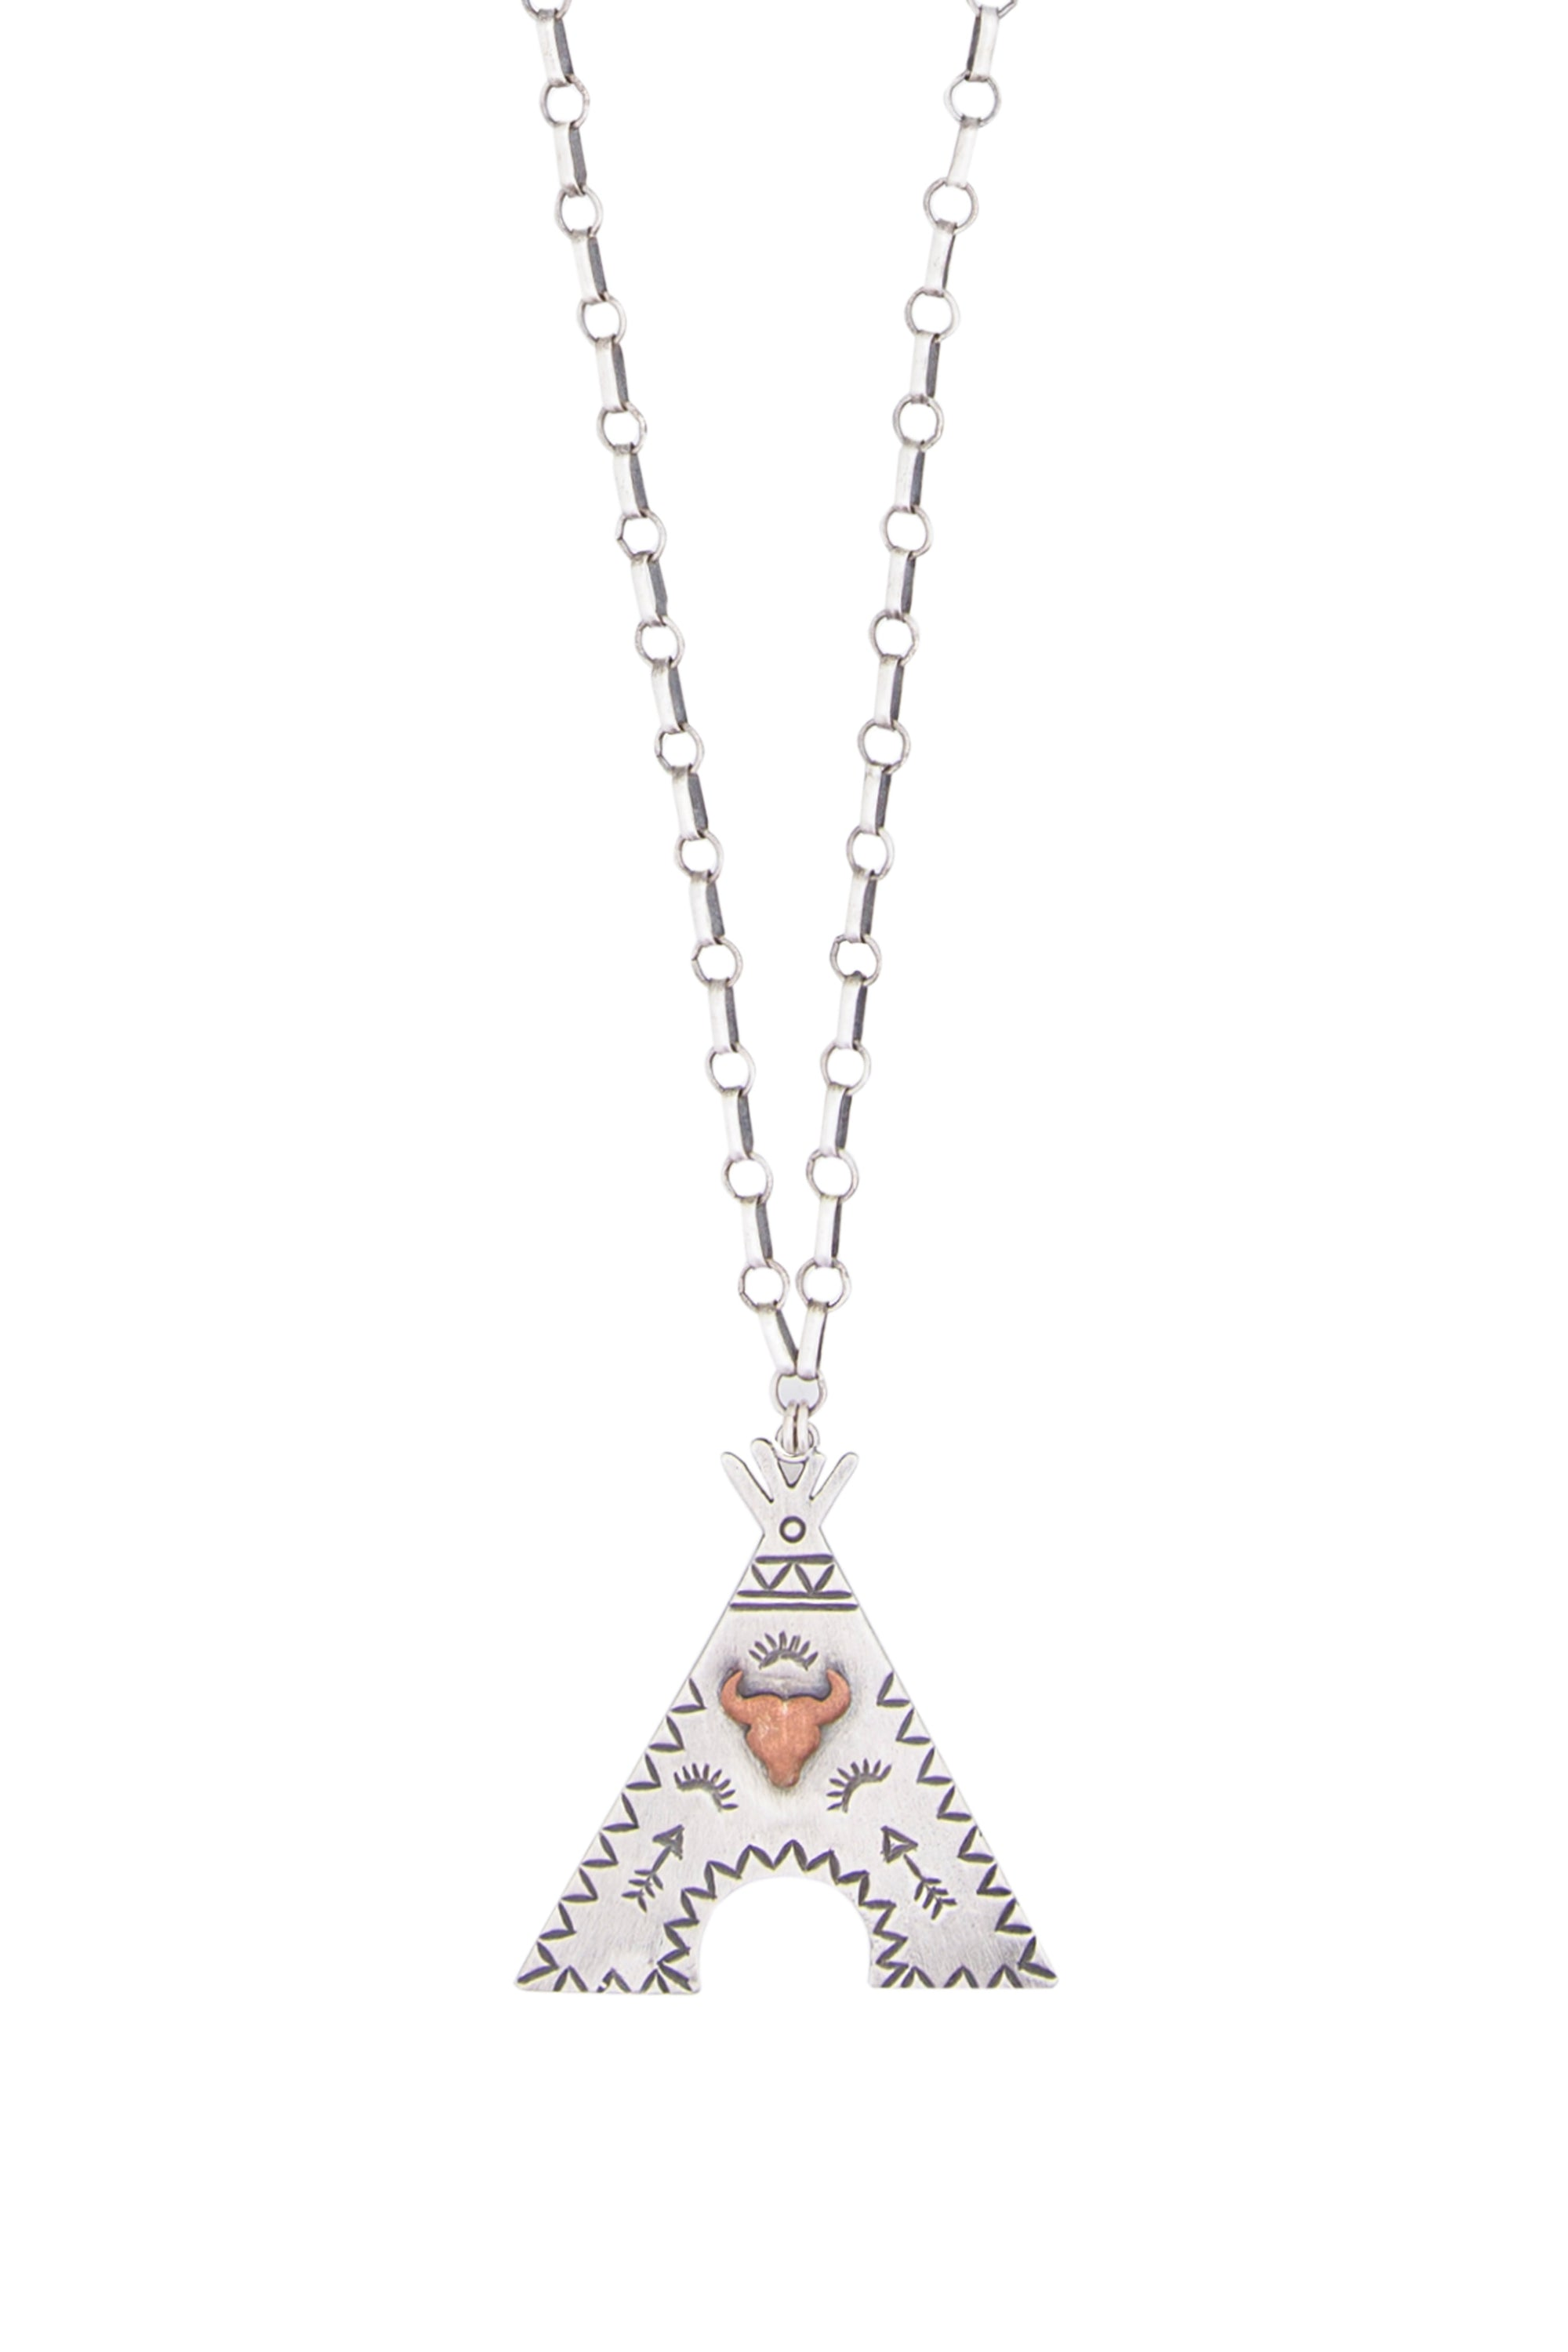 Necklace, Chain, TeePee Love